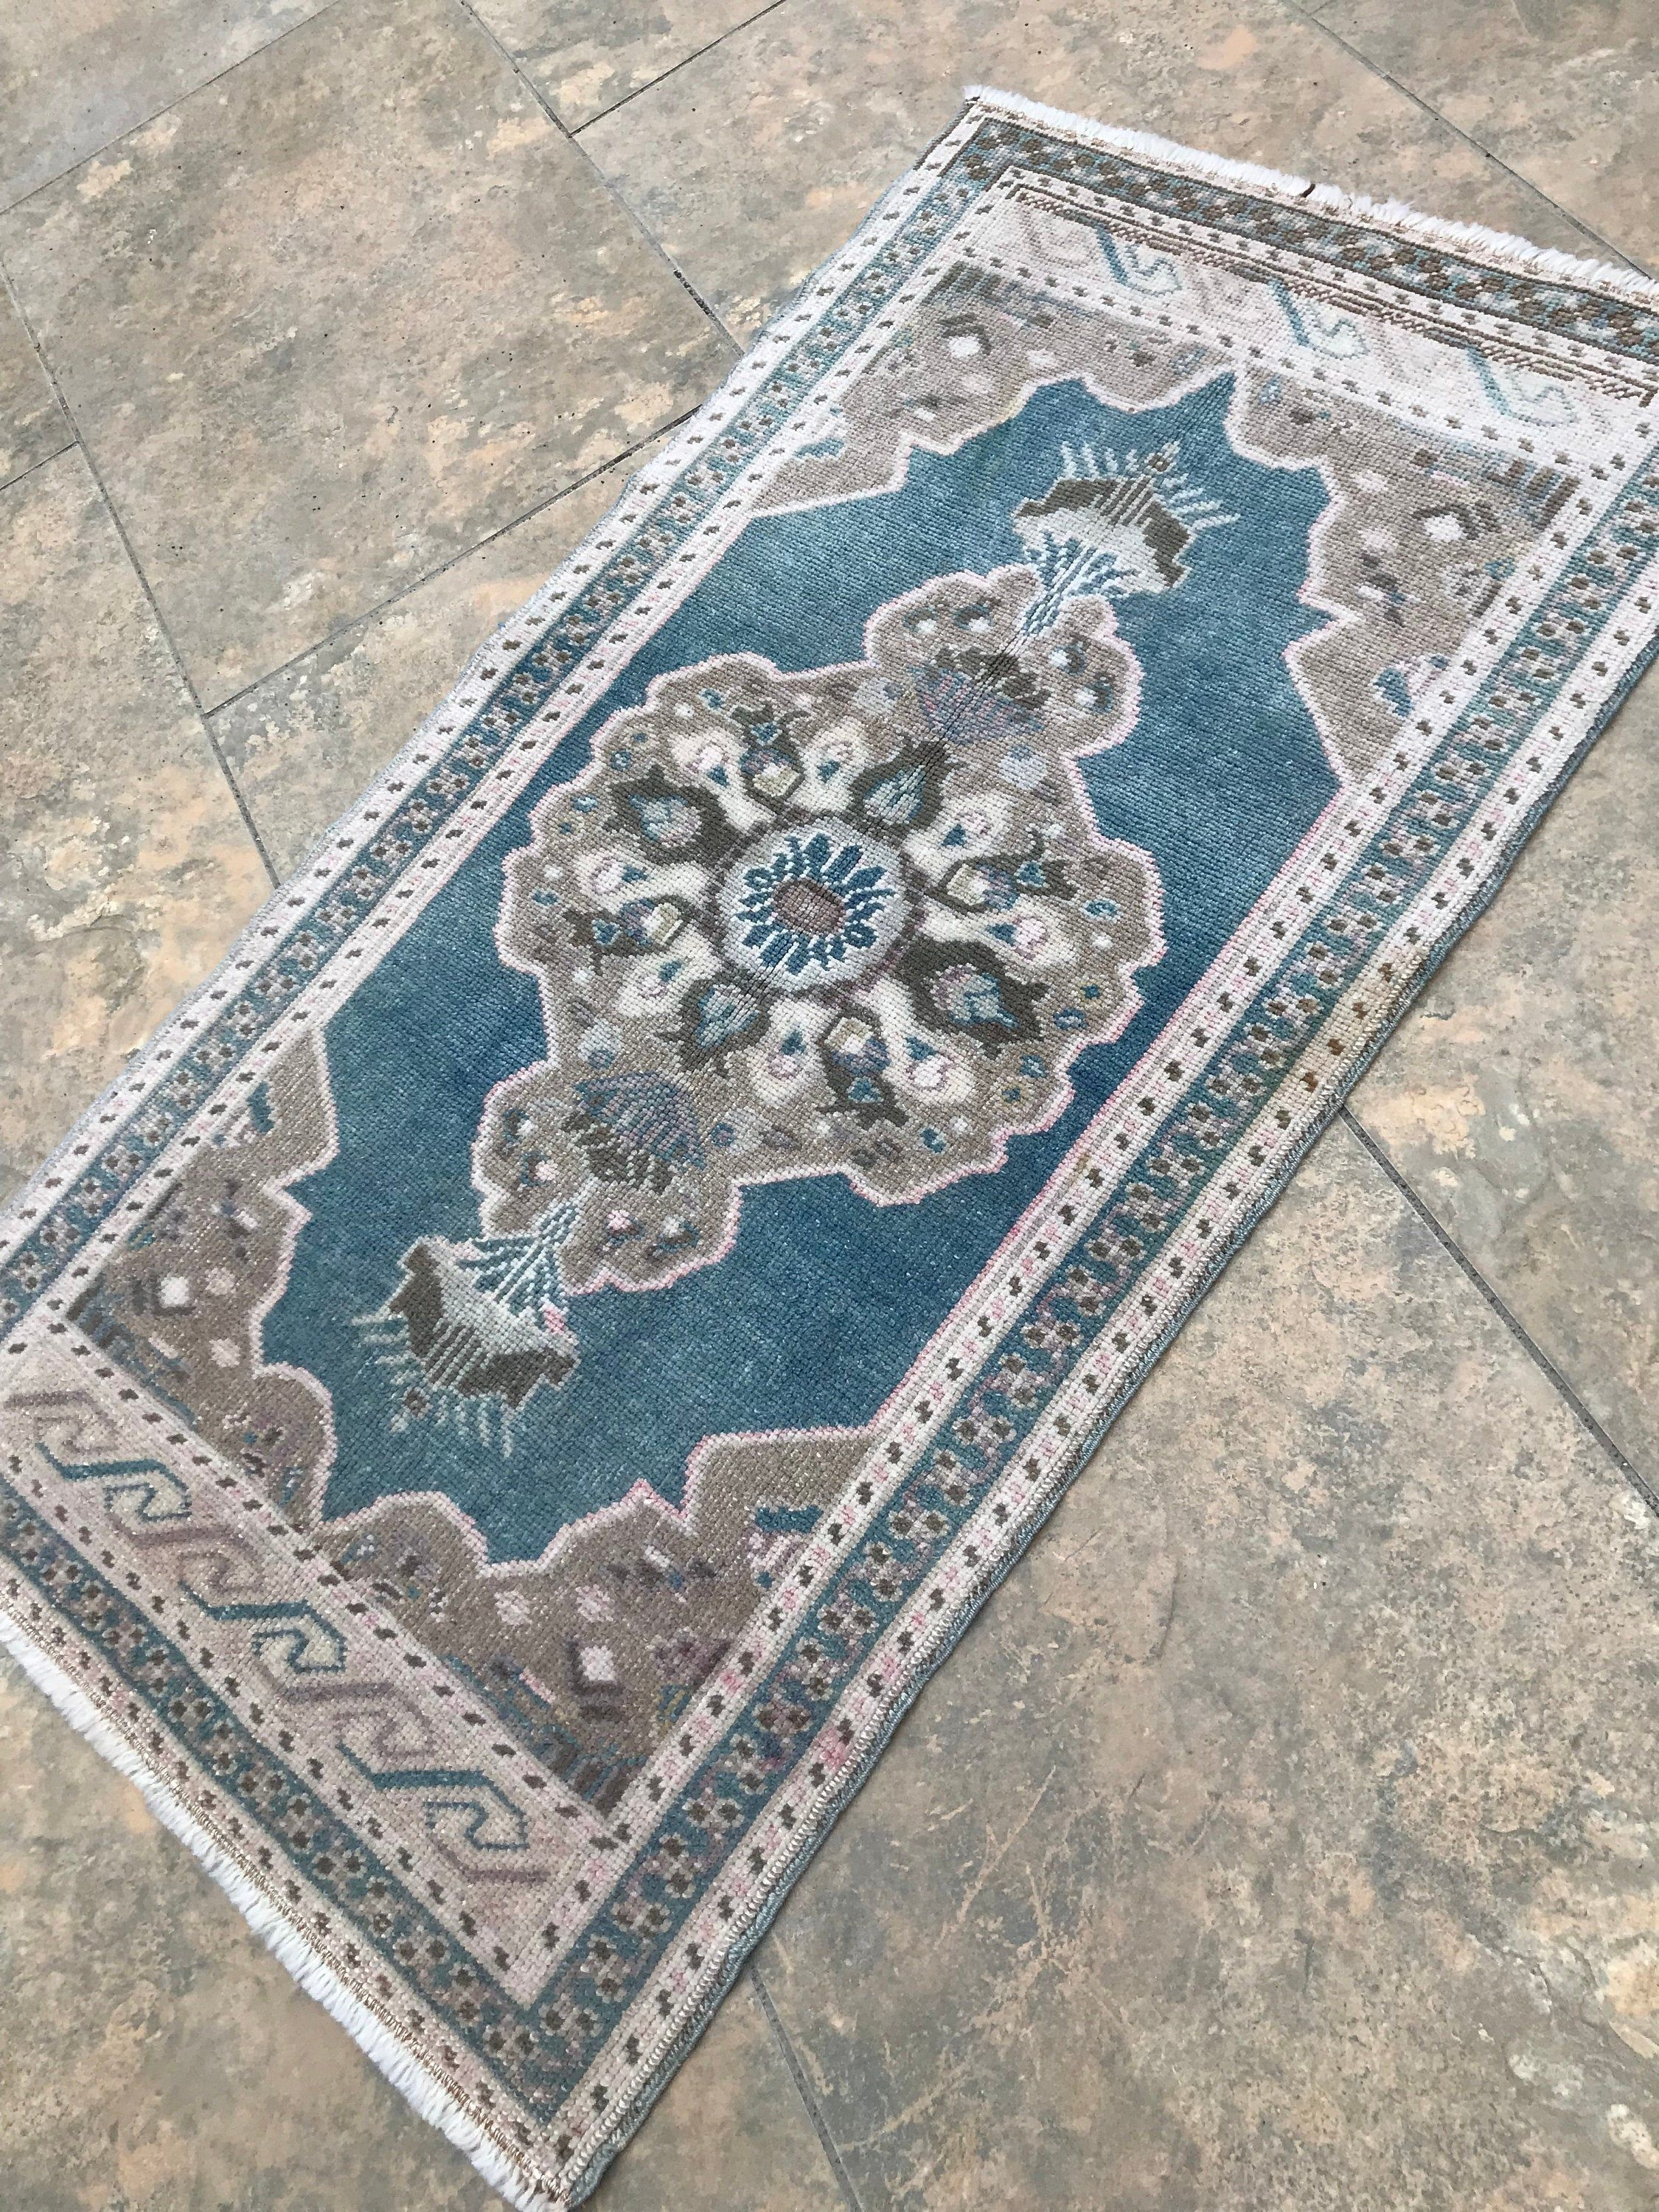 Very Primitive Small Rug Vintage Small Rug Distressed Low Pile Small Antique Rug Rustic No